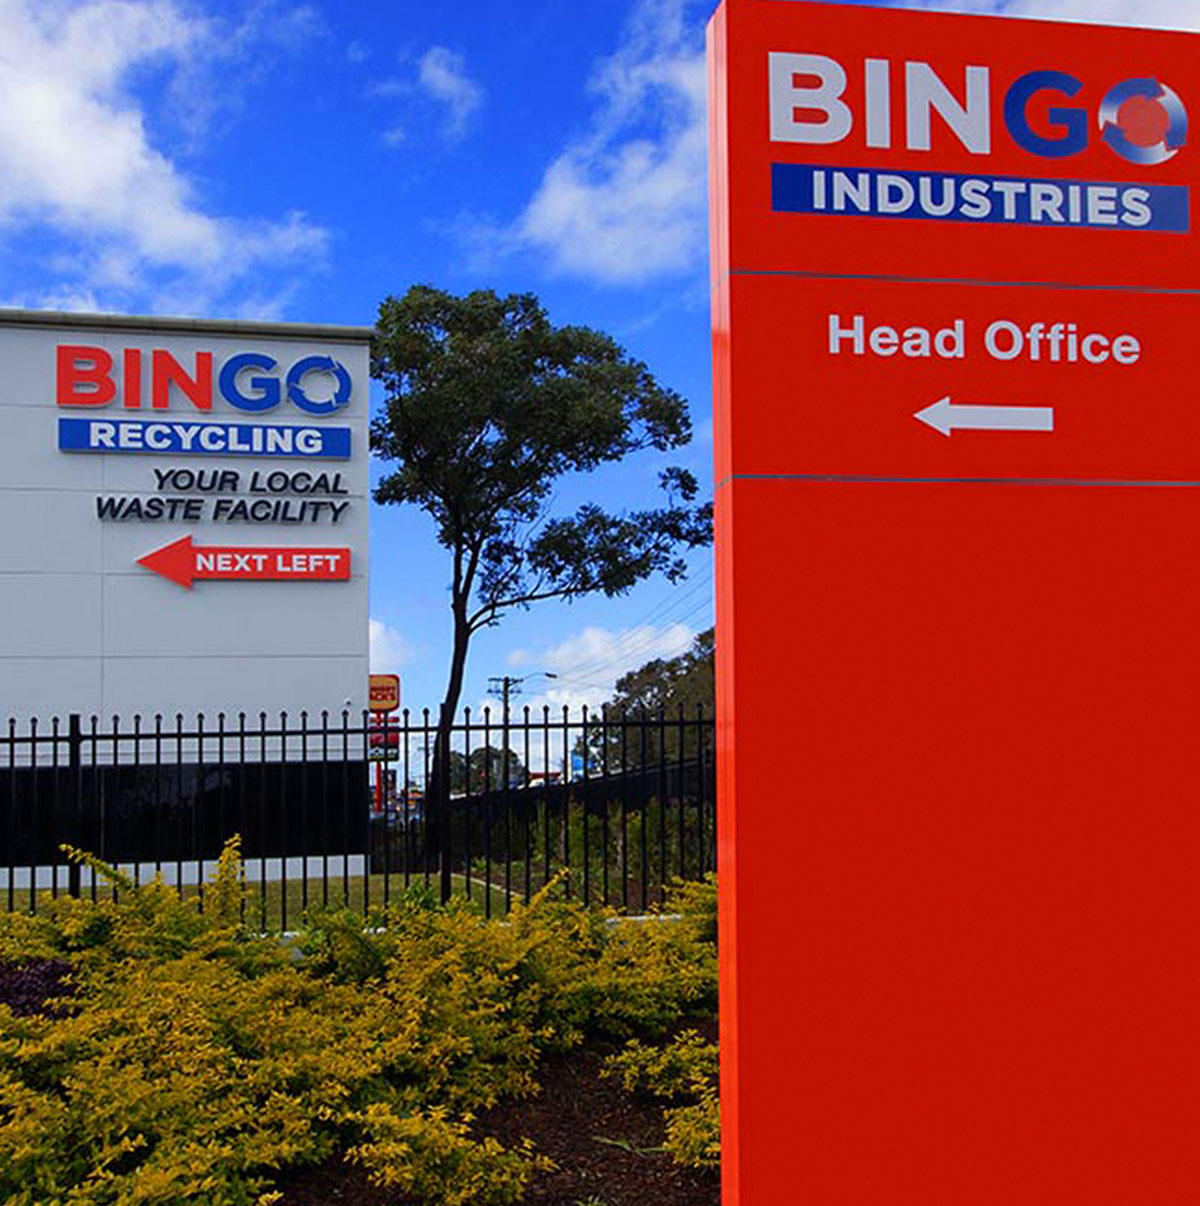 Our Creation - Bingo Industries